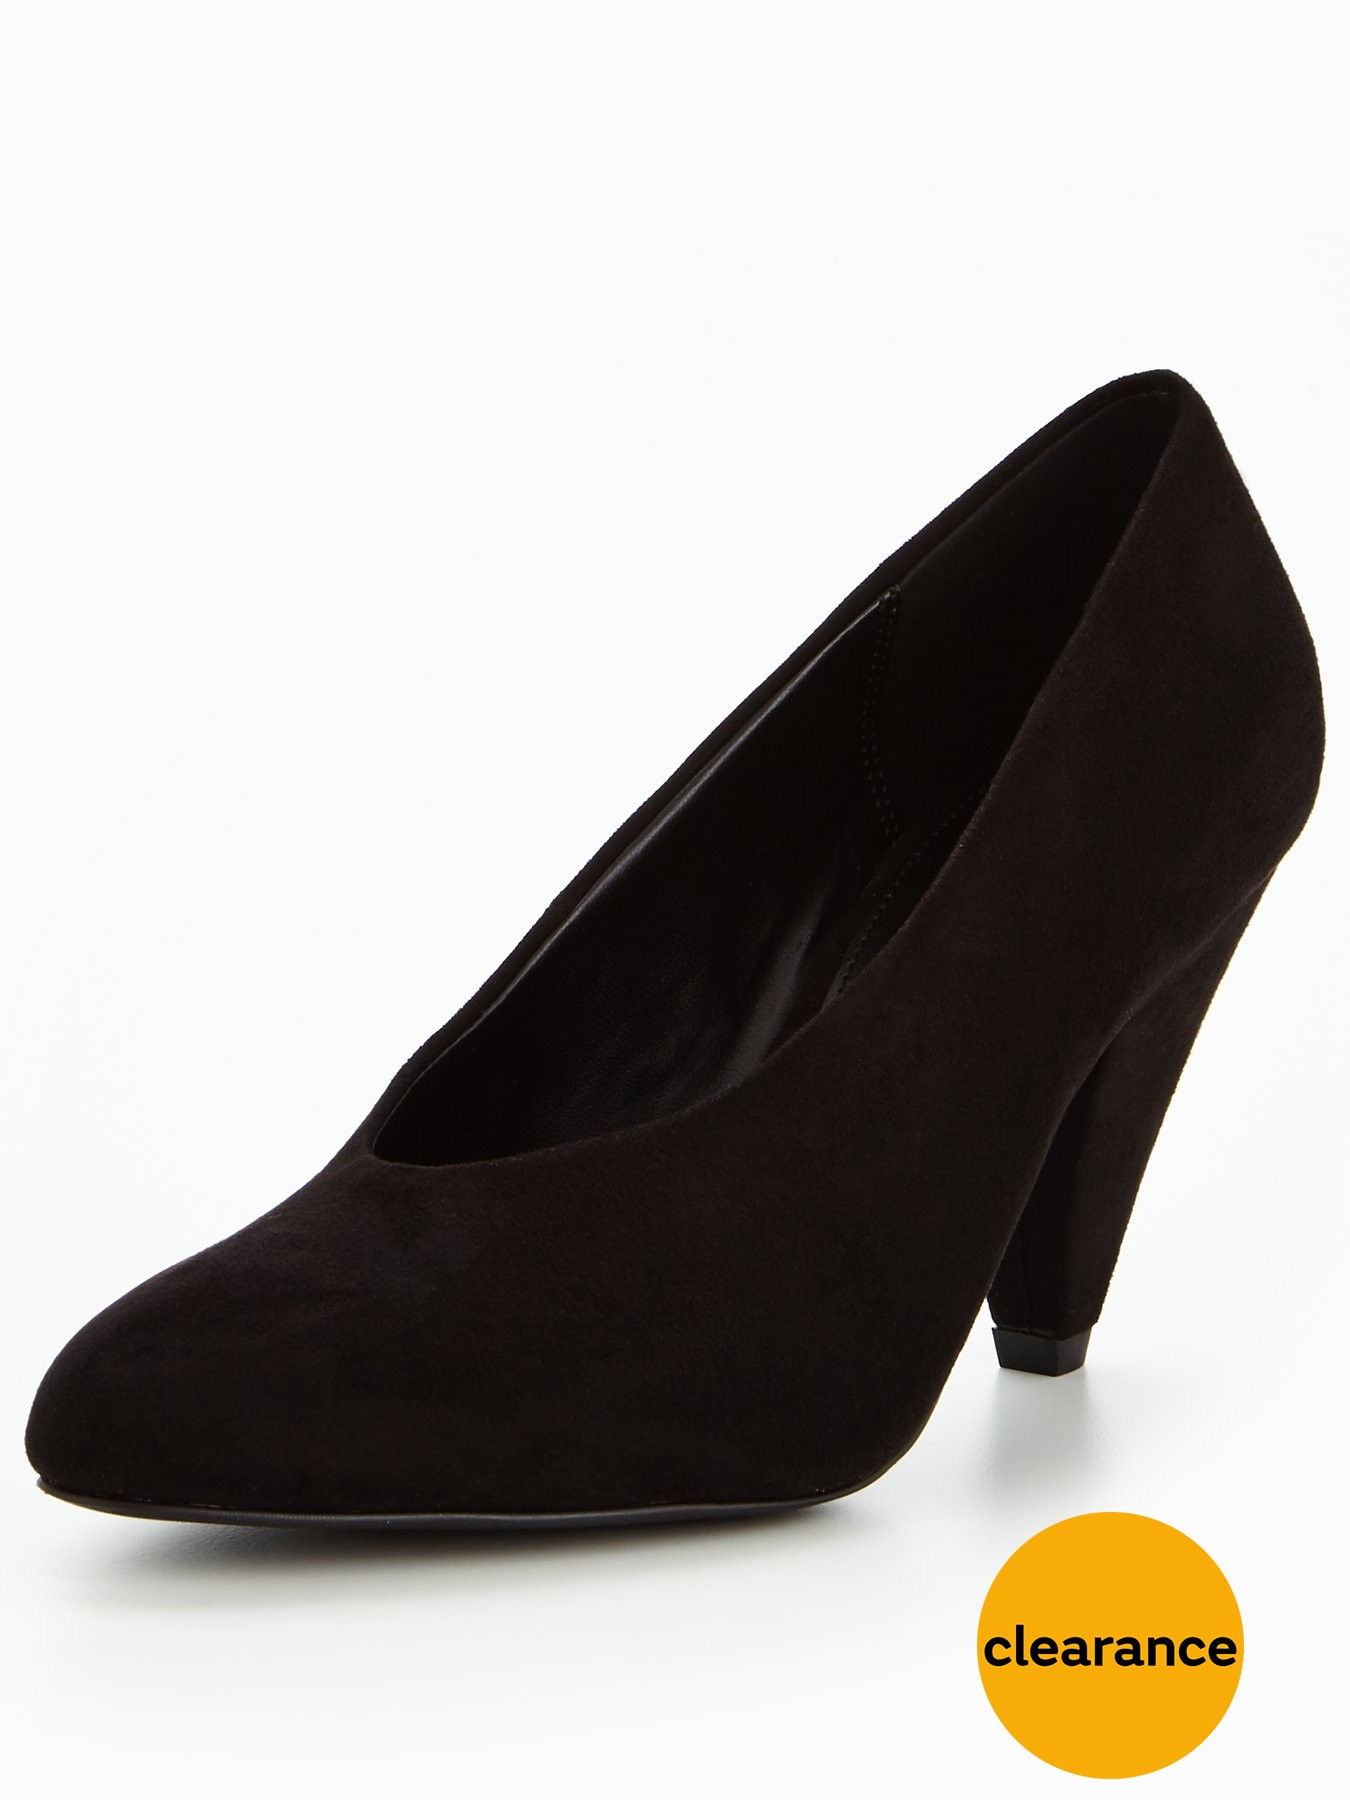 V by Very Dolly High Vamp Mid Heel Court Shoe Black 1600166378 Women's Shoes V by Very Heels